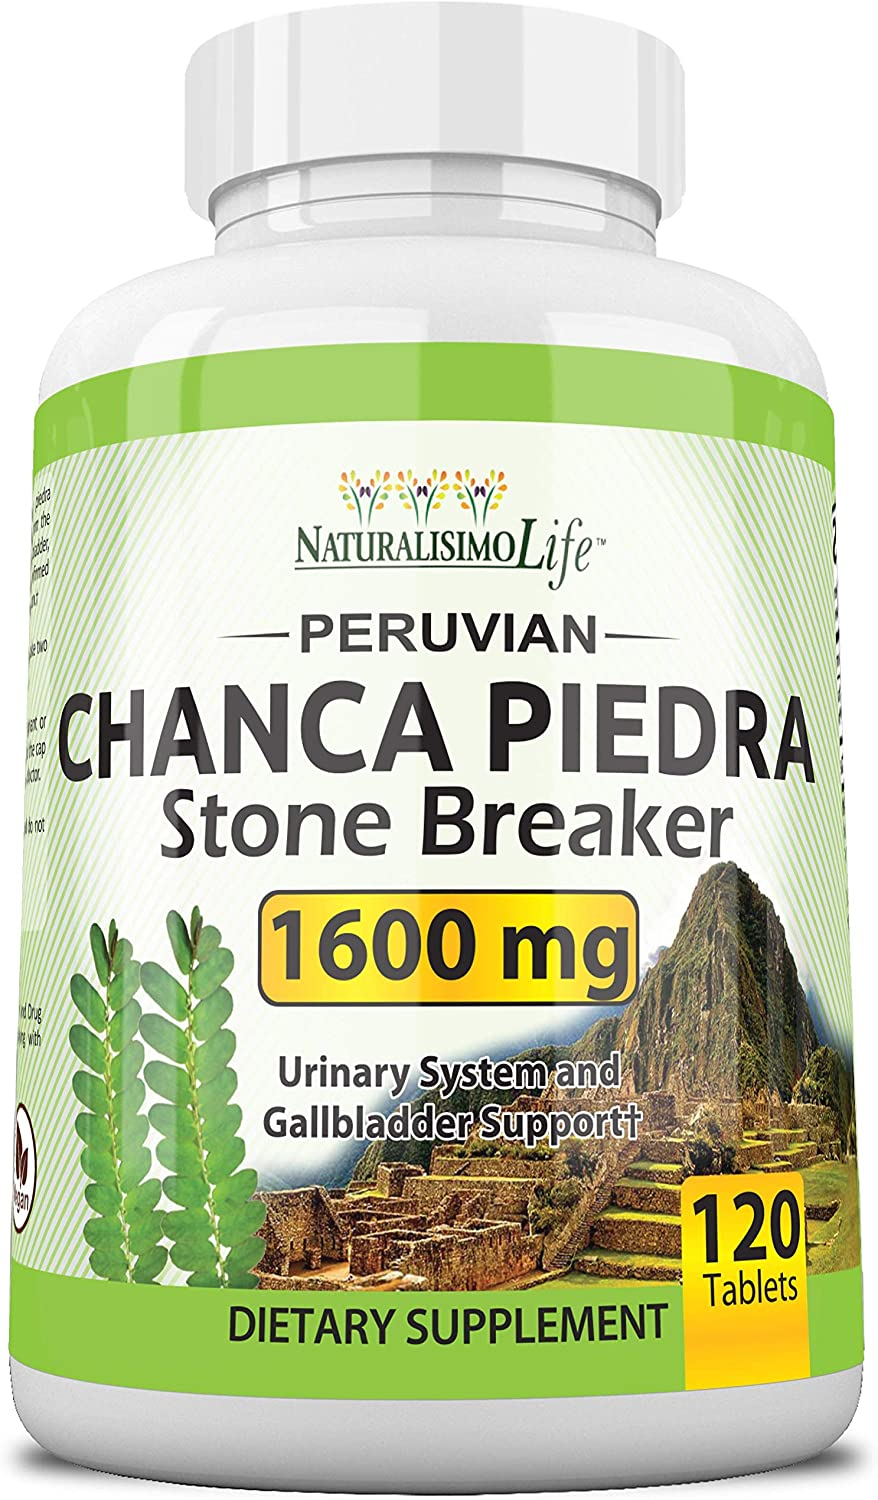 Chanca Piedra 1600 mg - 120 Tablets Kidney Stone Crusher Gallbladder Support Peruvian Chanca Piedra Made in The USA: Health & Personal Care